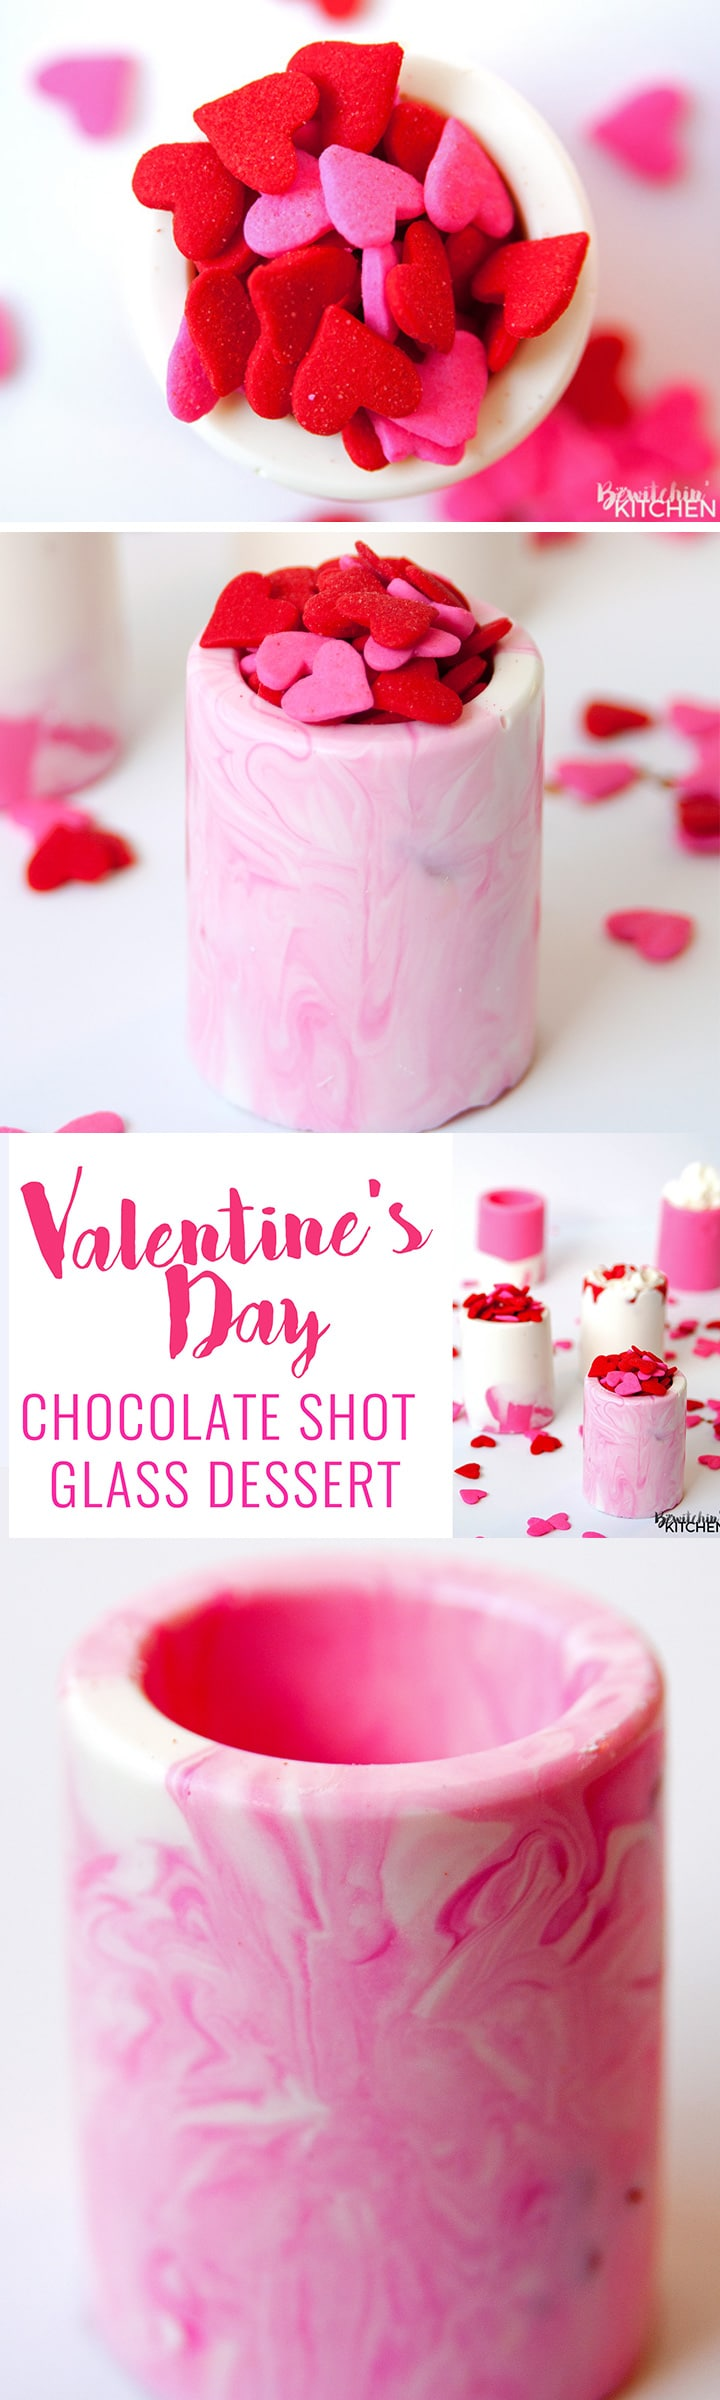 Valentine's Day dessert idea: vanilla chocolate shot glasses. This easy, no bake dessert uses Candy Melts and a shot glass mold. Perfect for kid's Valentine's parties. |thebewitchinkitchen.com